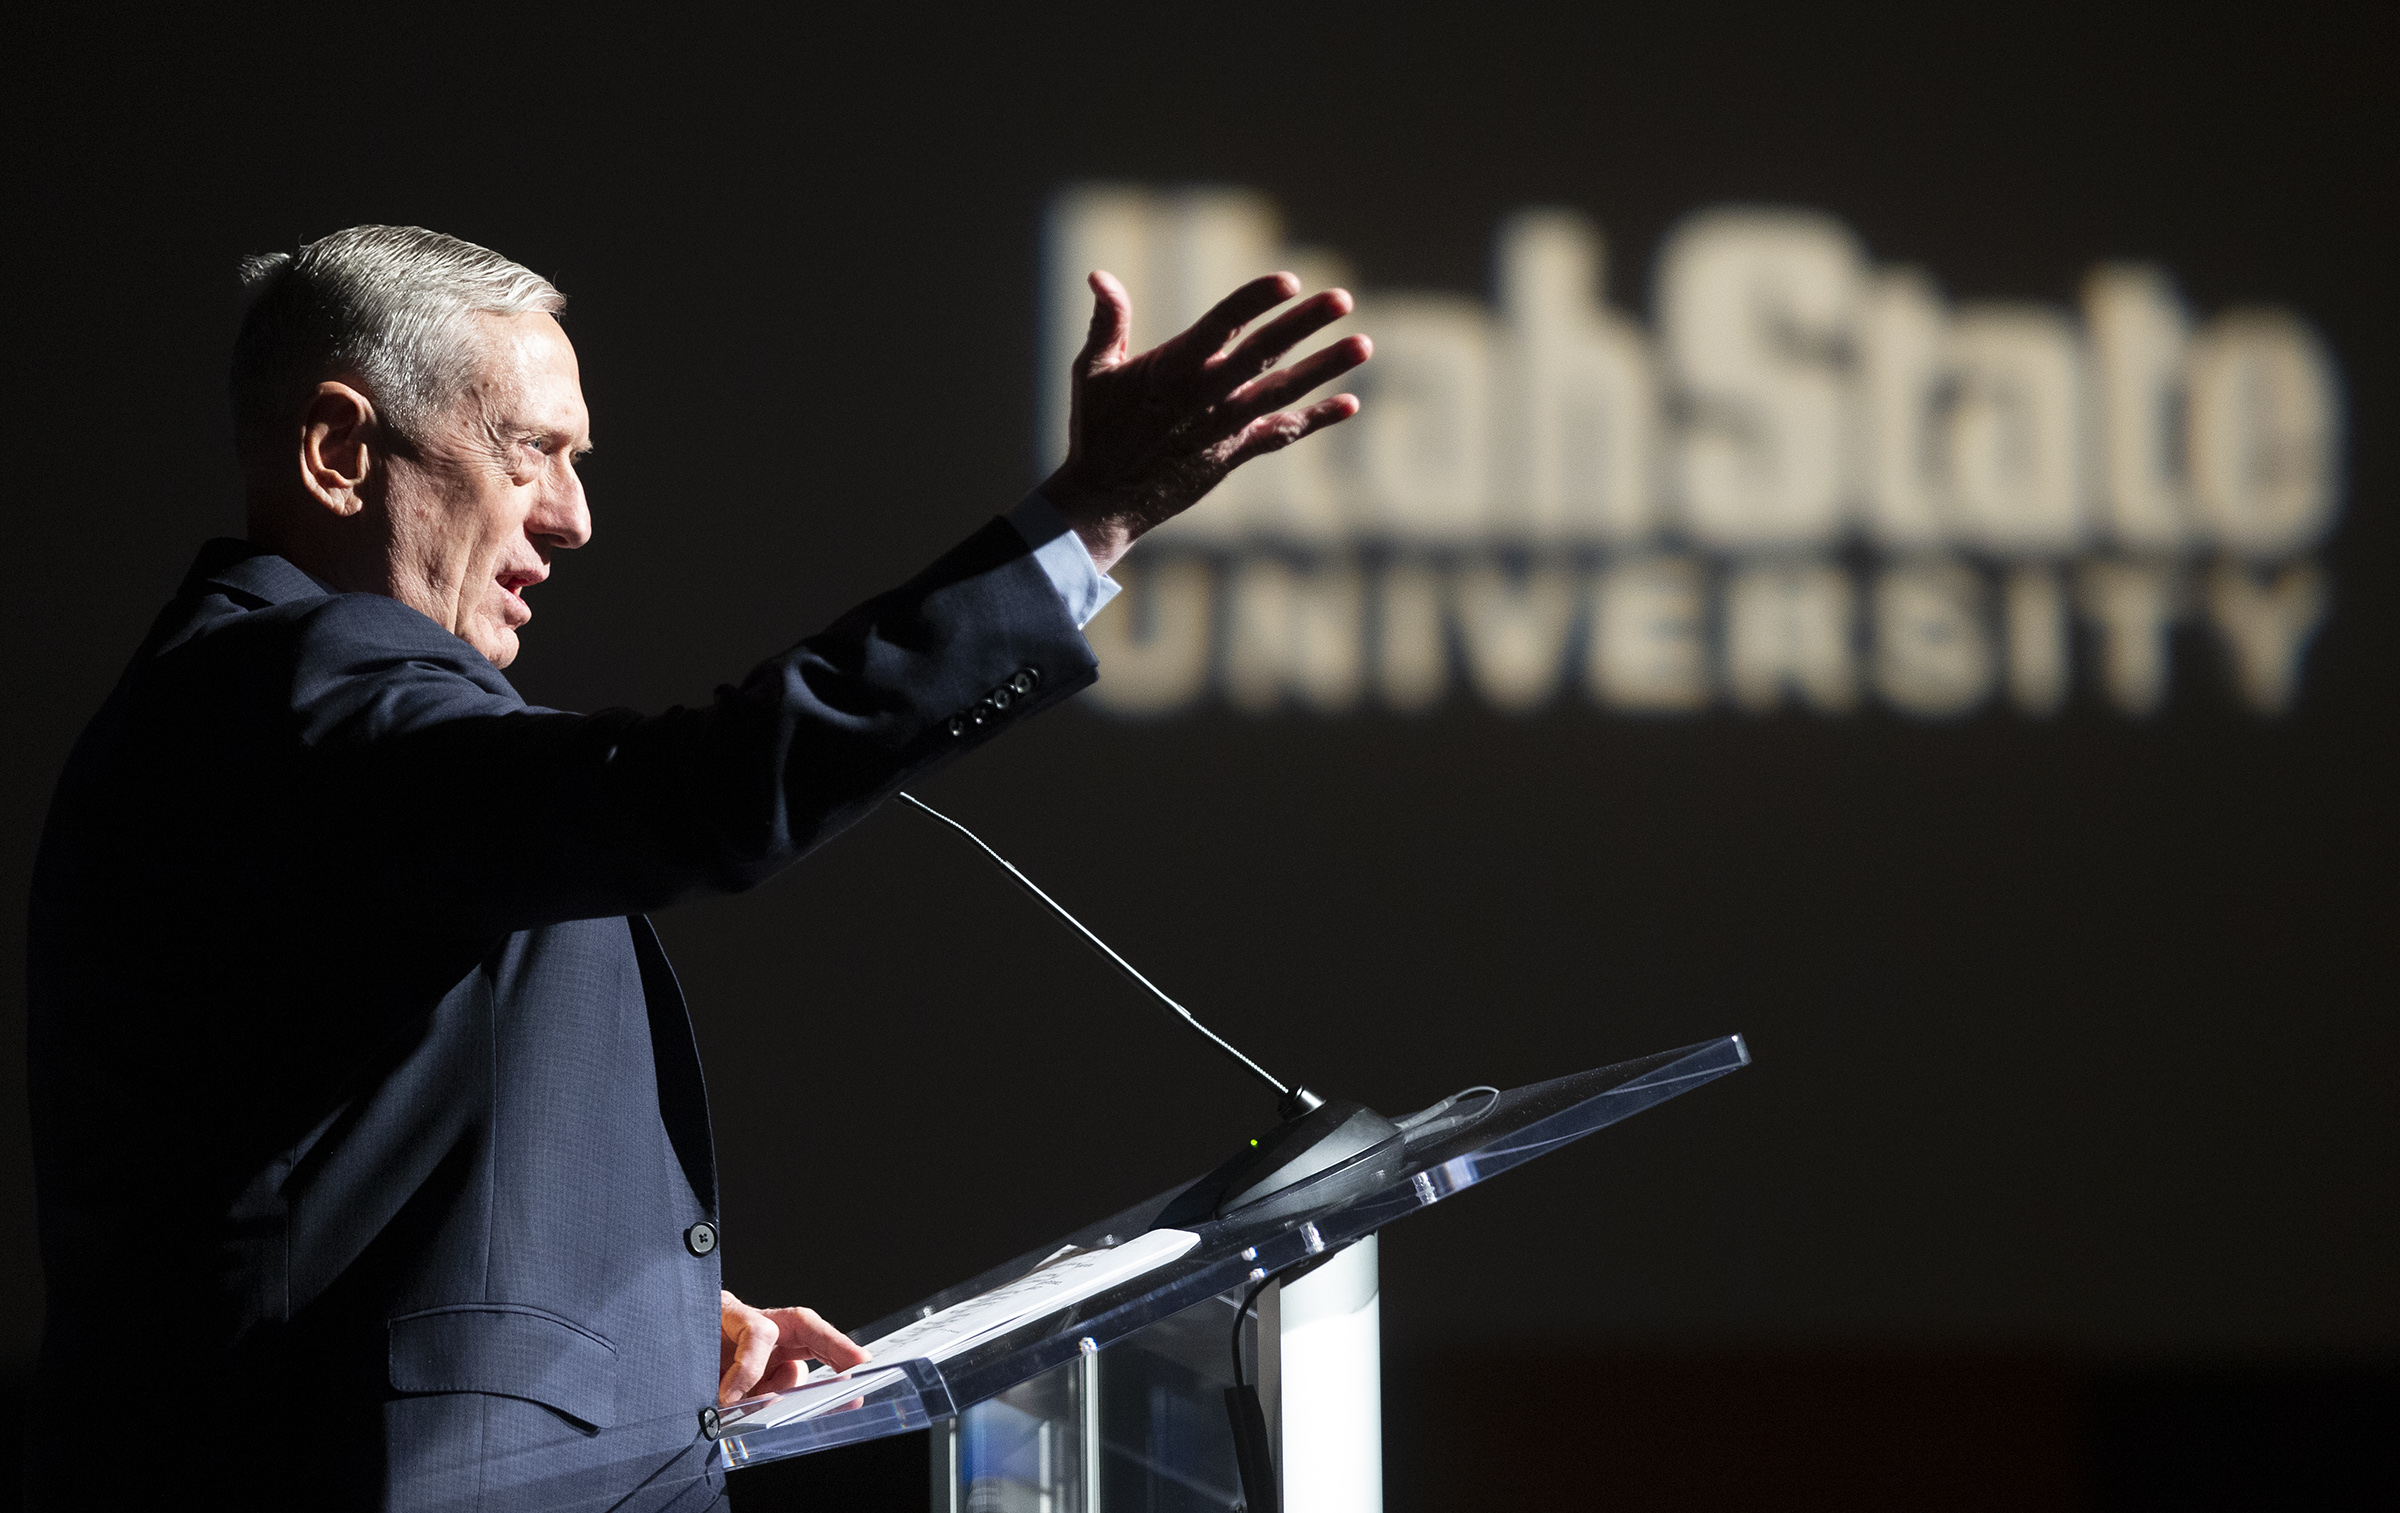 """FormerDefense Secretary and retired four-star Marine Corps Gen. James Mattis speaks on """"U.S. Leadership on the World Stage: Getting It Right, andHealing Rifts at Home"""" at Utah State University in Logan on Tuesday, Jan. 21, 2020."""